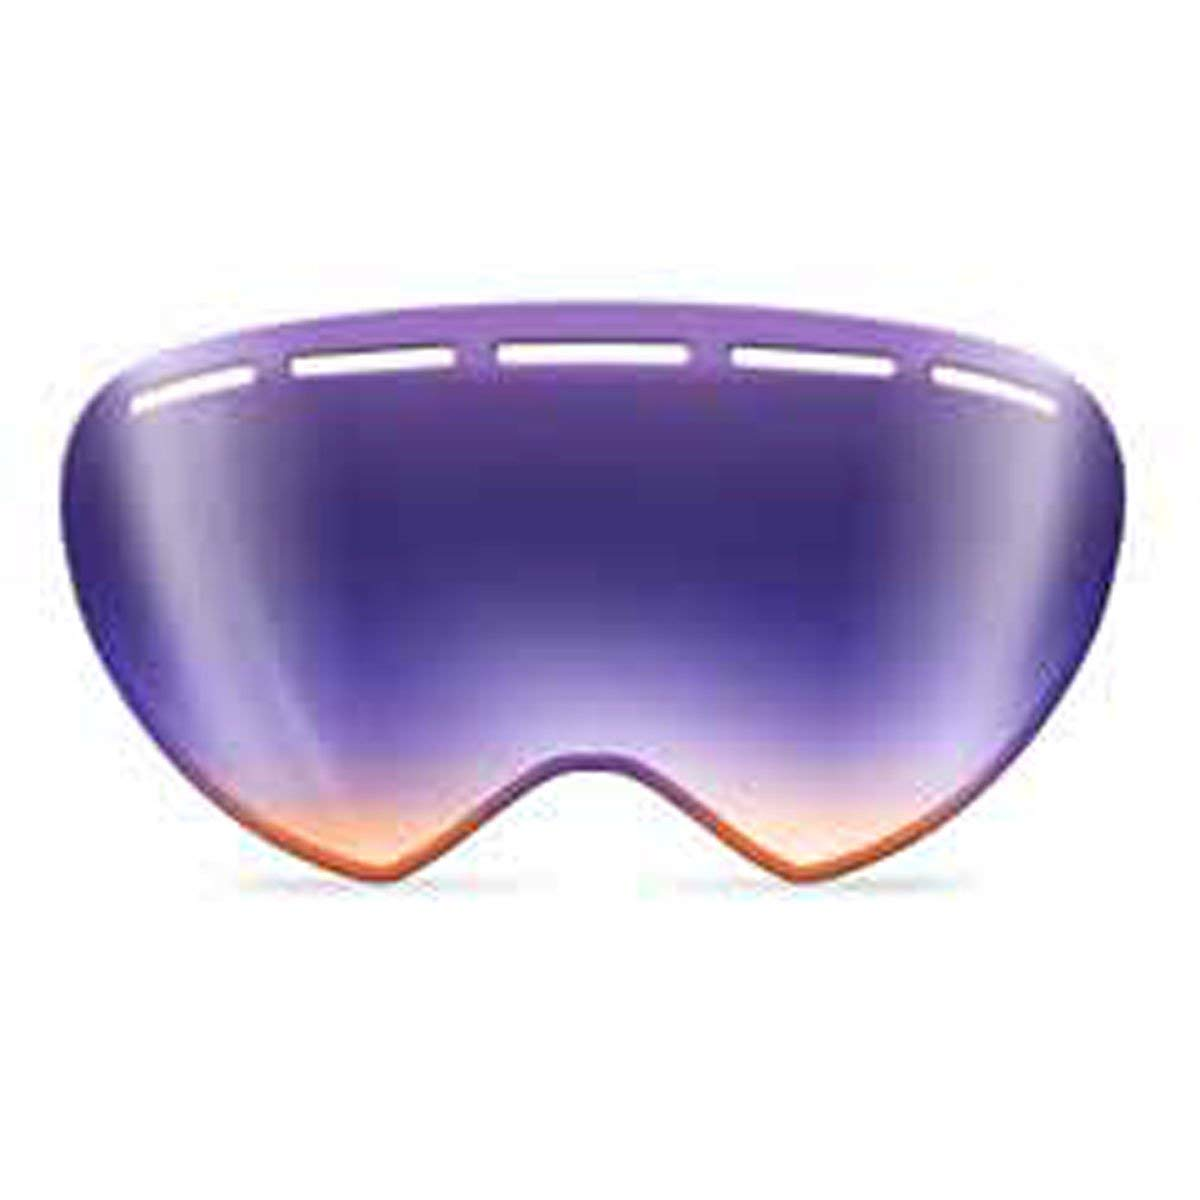 ecd7c9c083 Get Quotations · Bolle Virtuose Ski Goggle Replacement Lens